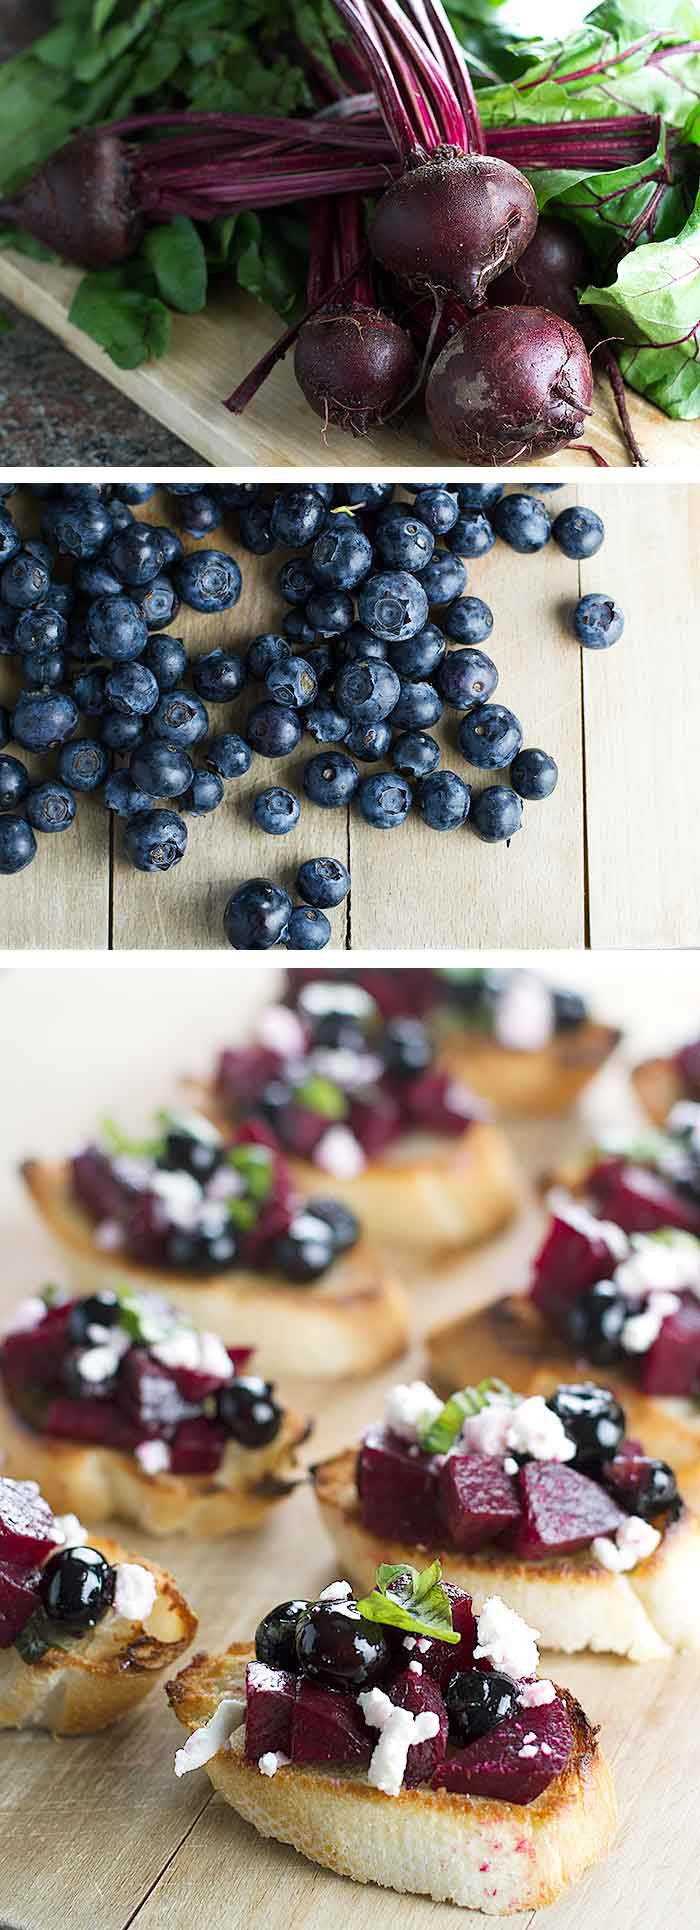 Beet and Blueberry Bruschetta | girlgonegourmet.com